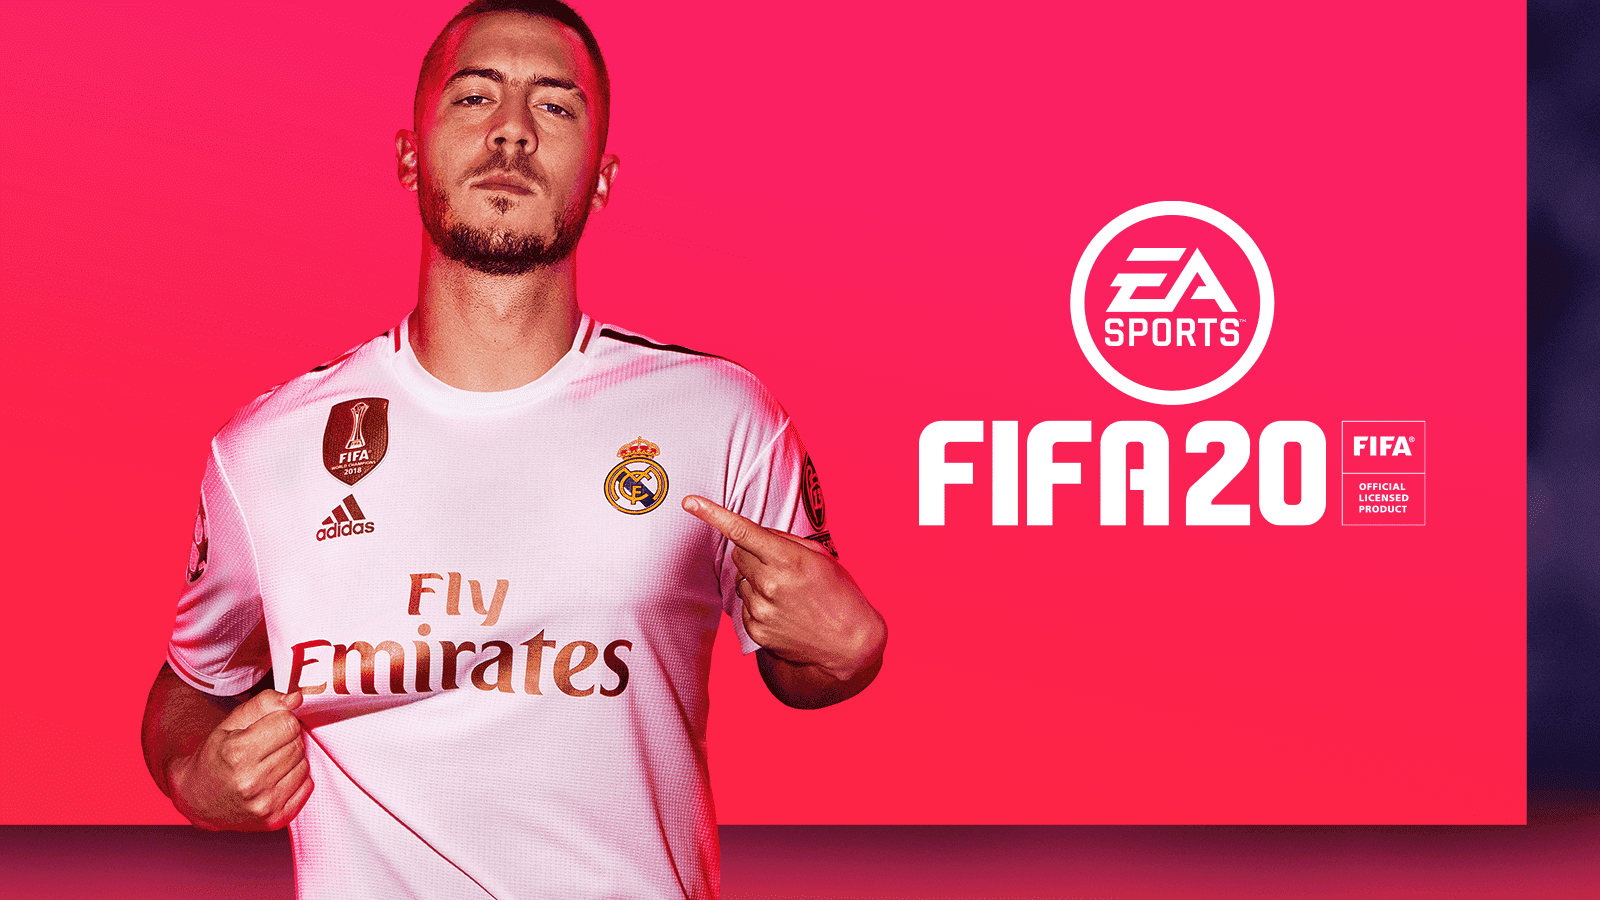 🟠FIFA 20 📌ORIGIN KEY📌 GLOBAL+GIFT